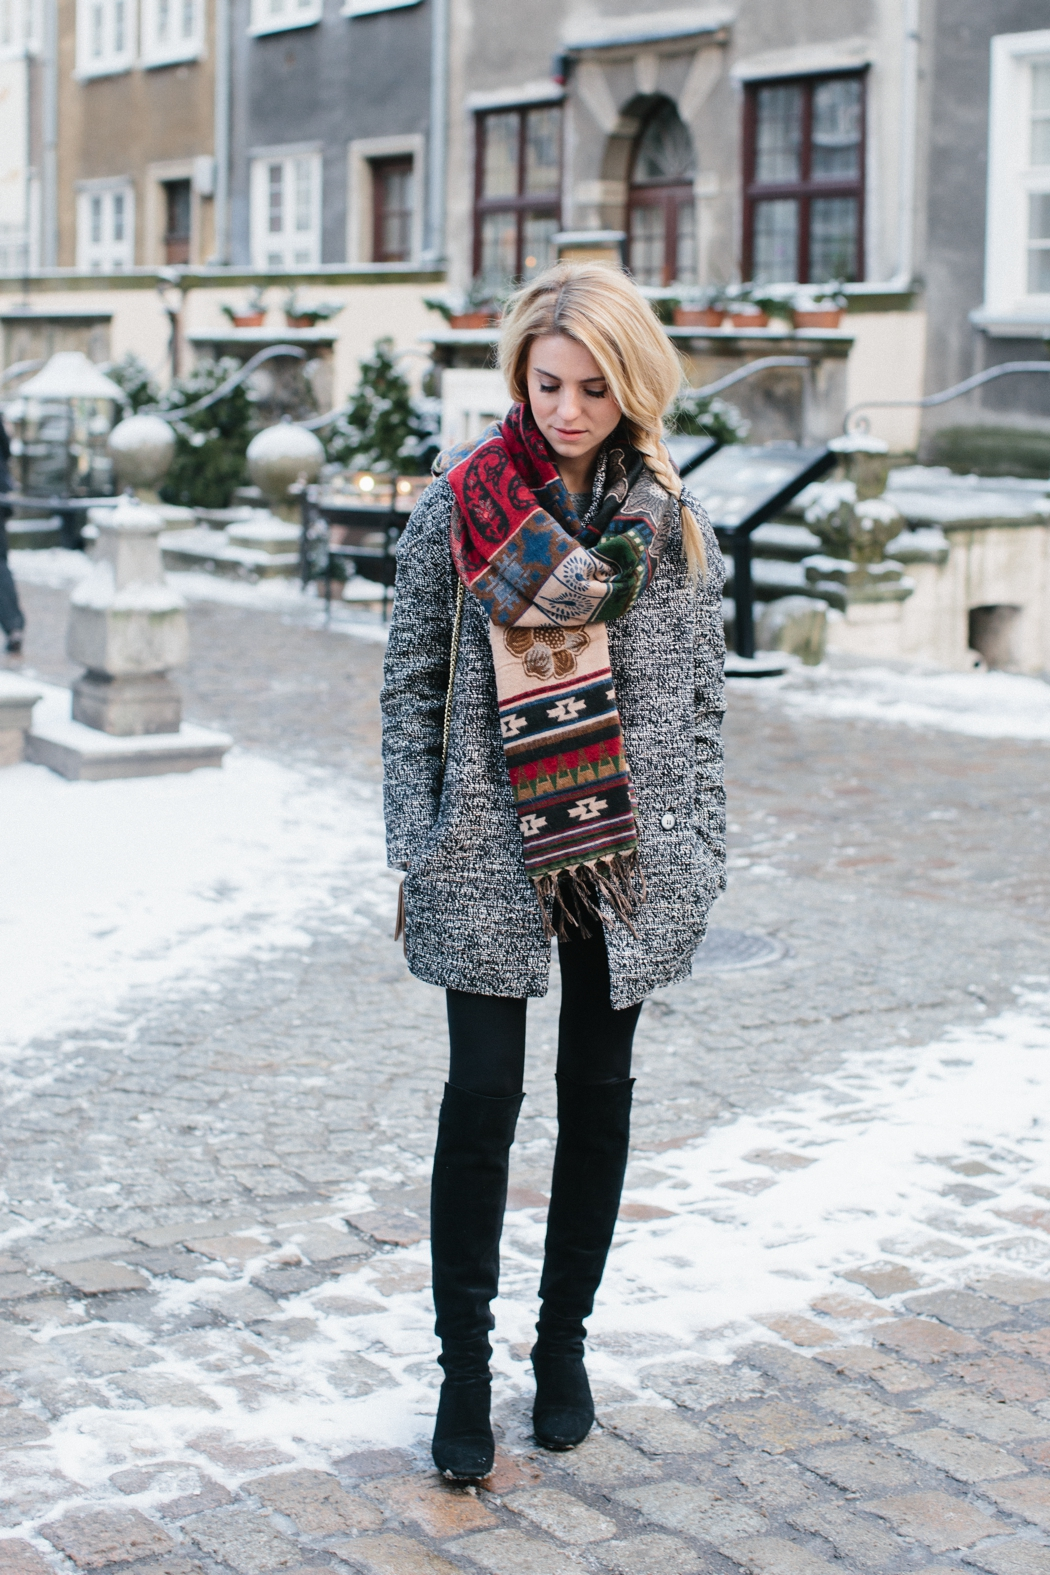 Awesome! What Boots To Go With Your Winter Looks?